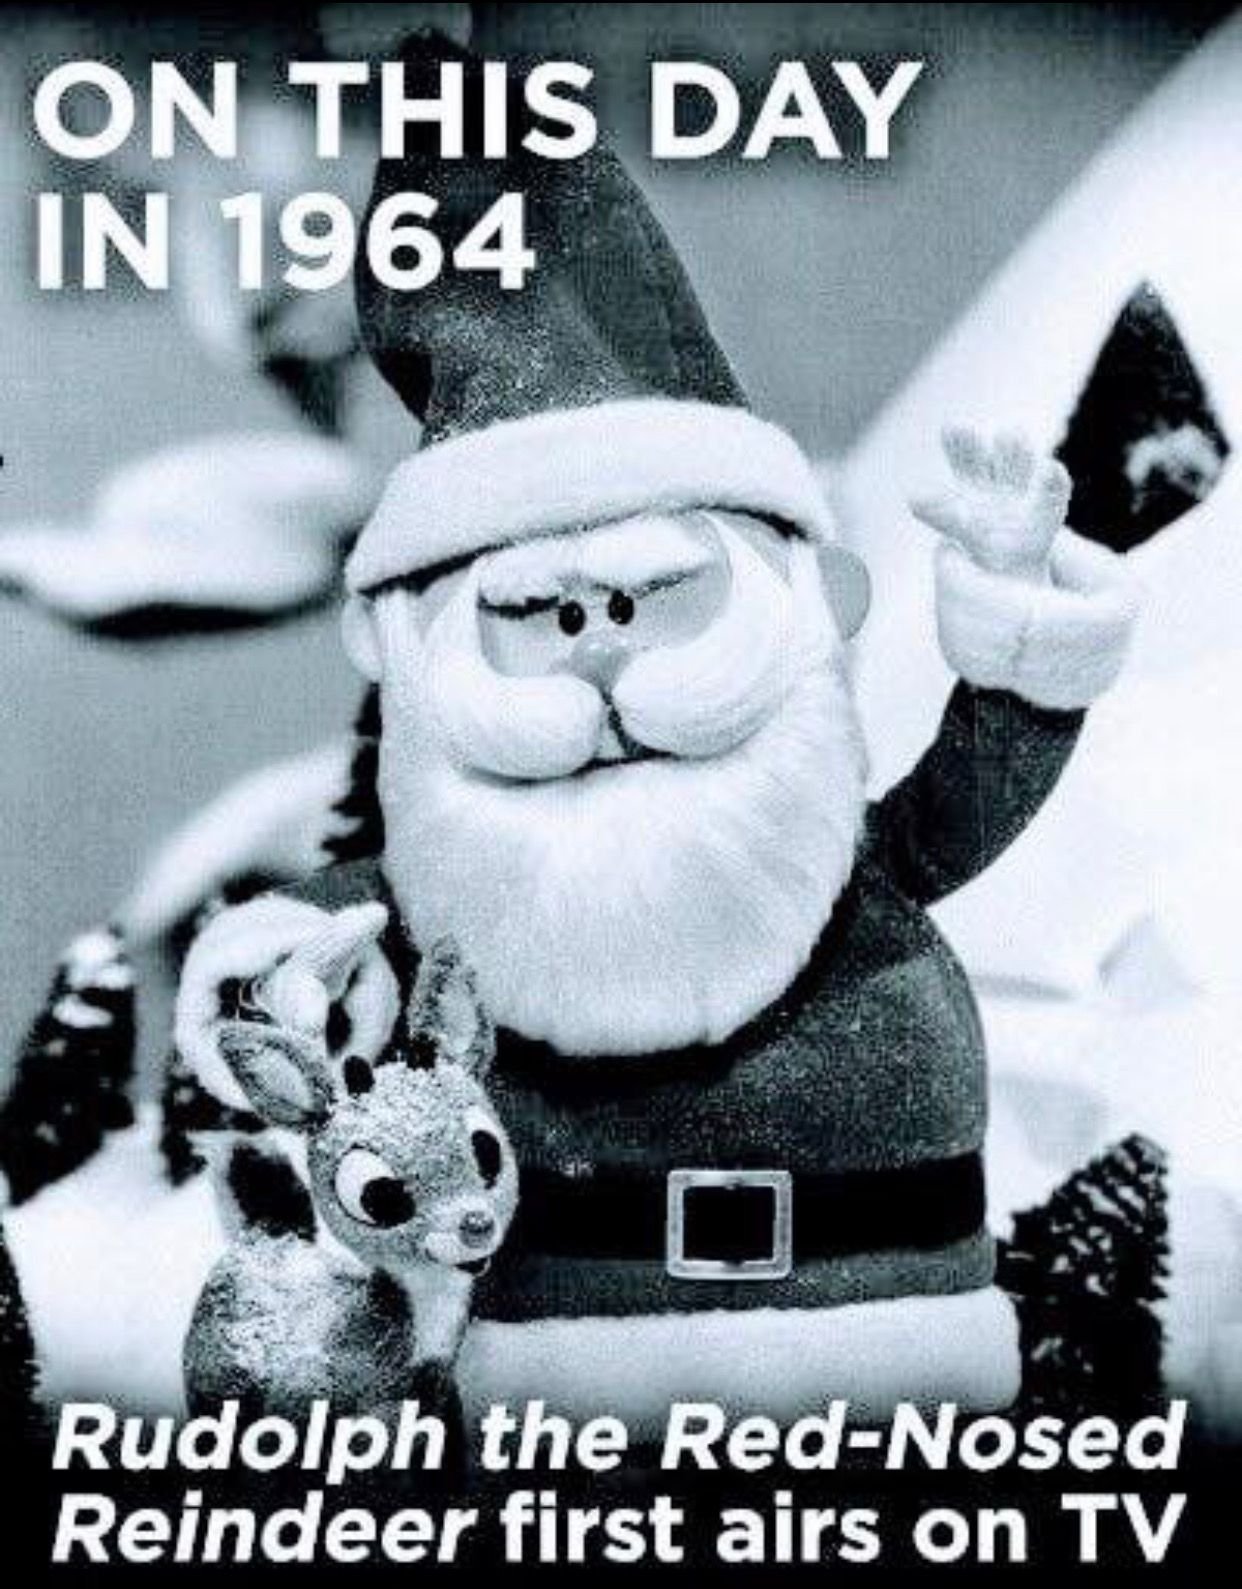 Pin by Denise Heer on Christmas Thru The Years in 2018 | Pinterest ...